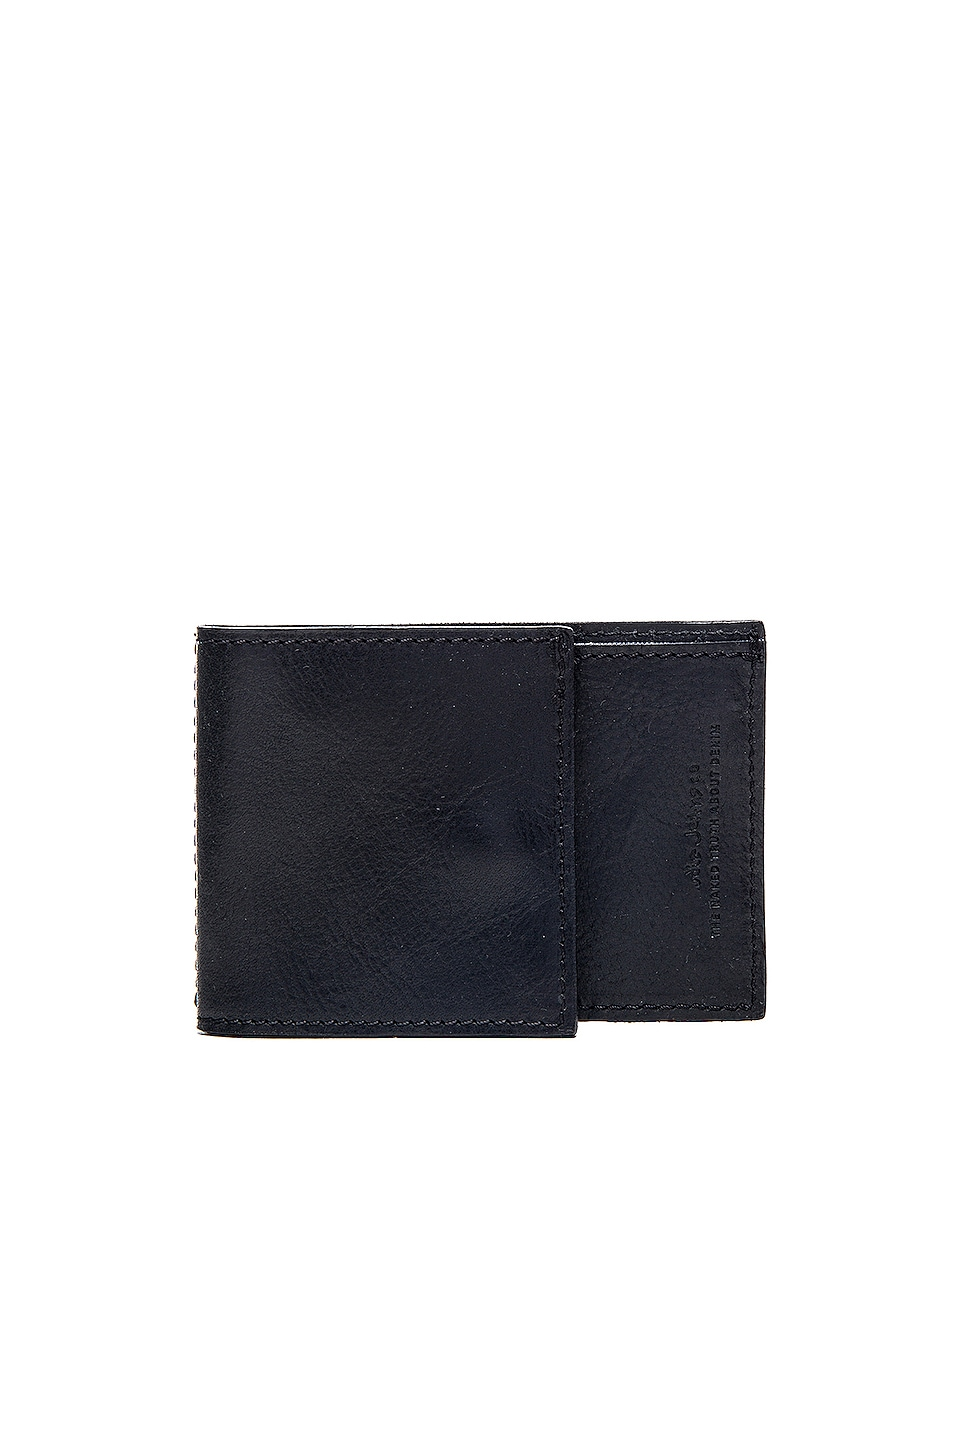 Nudie Jeans Olasson Wallet in Black